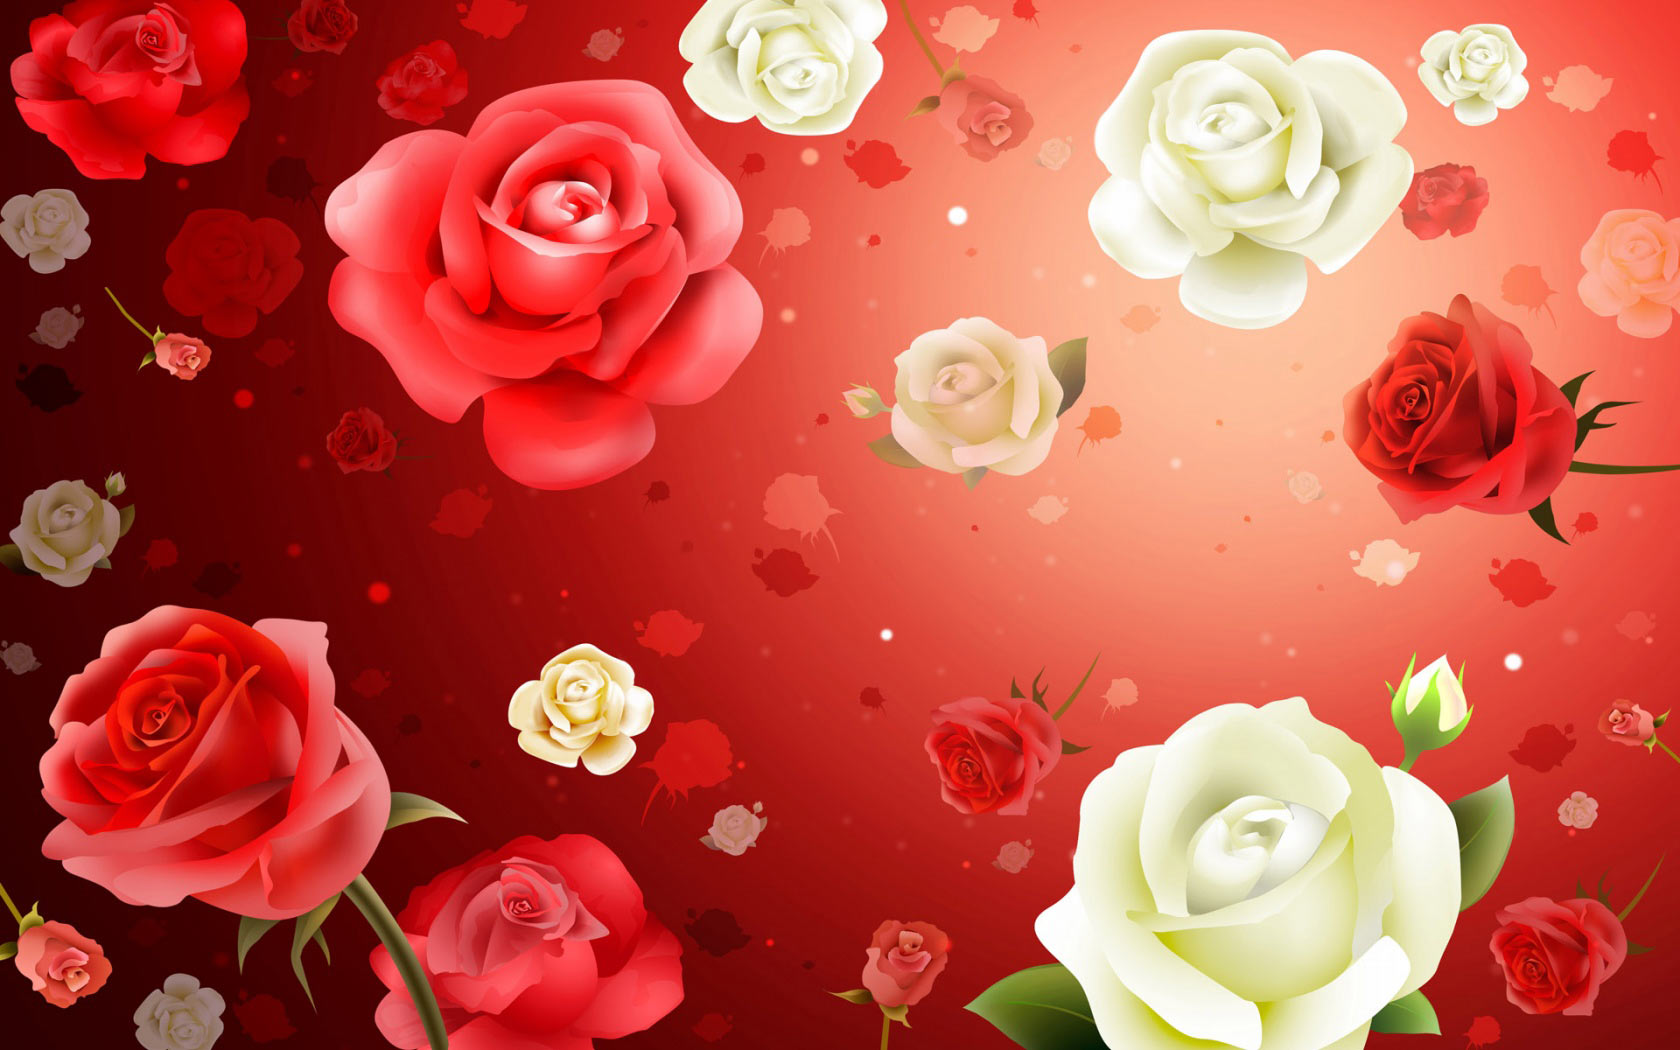 Flowers Wallpaper Desktop